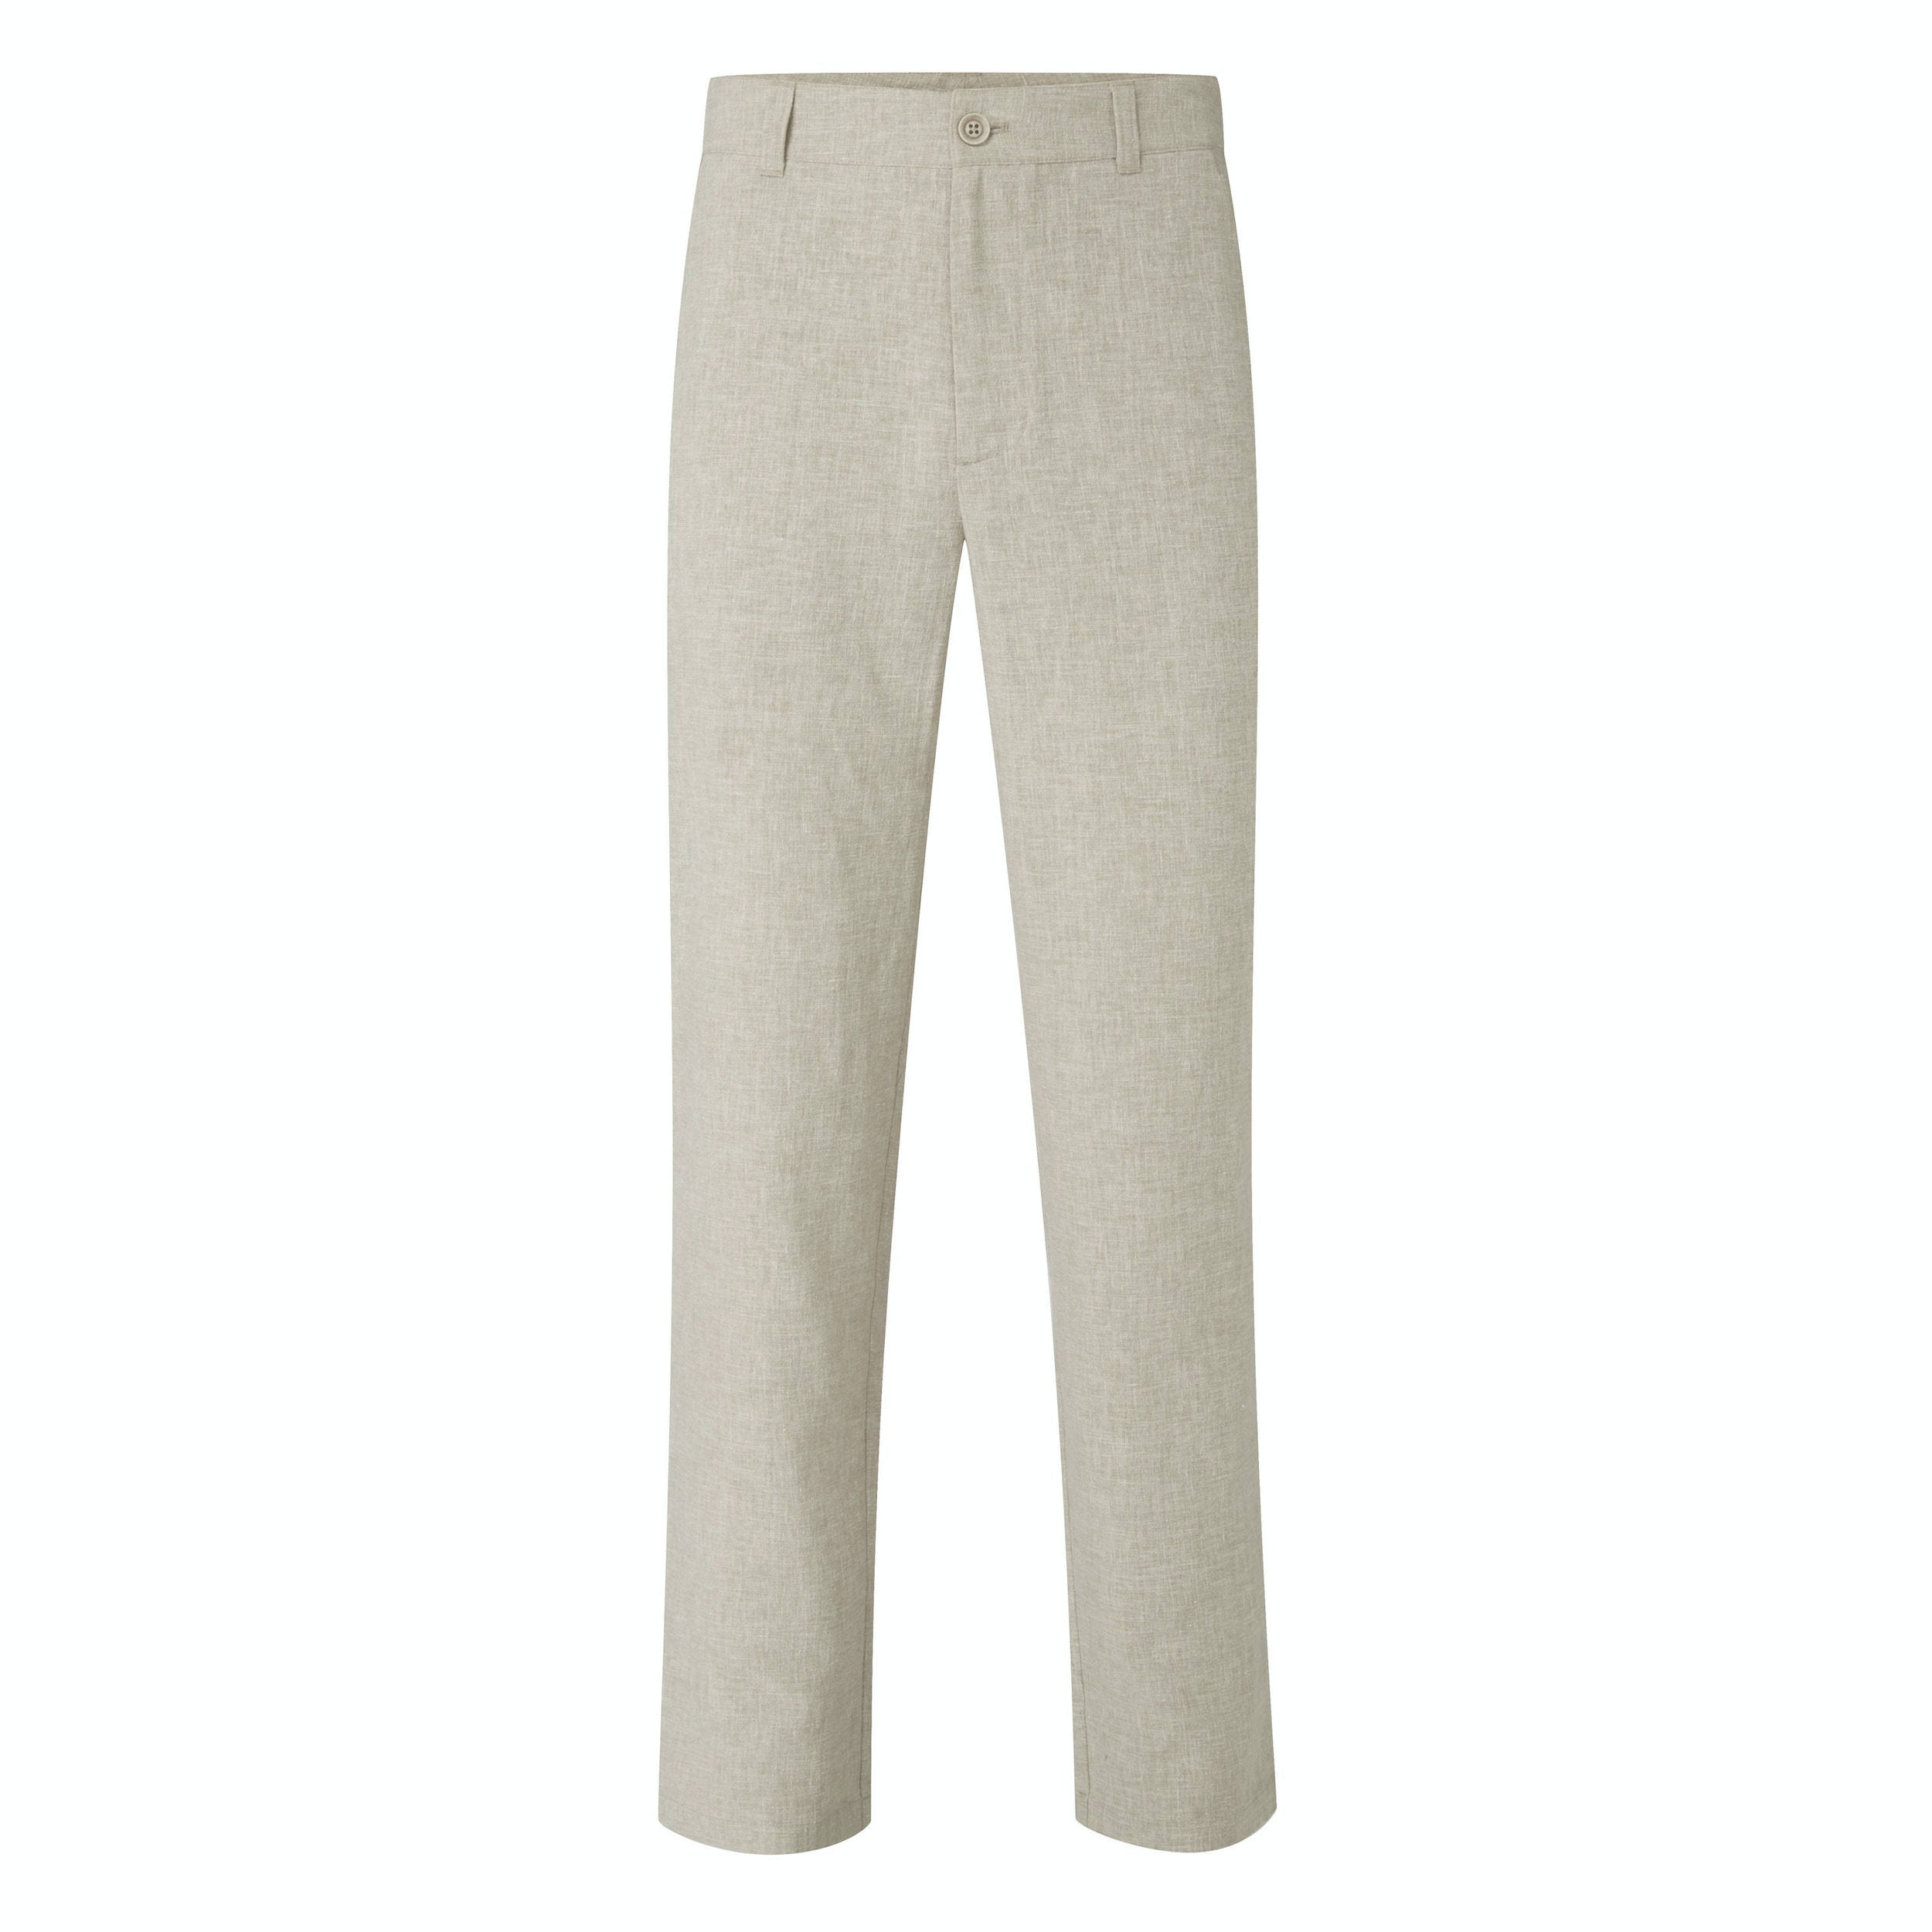 e9fbe374 Men's Maroc Trousers - Technical, smart/casual linen trousers.